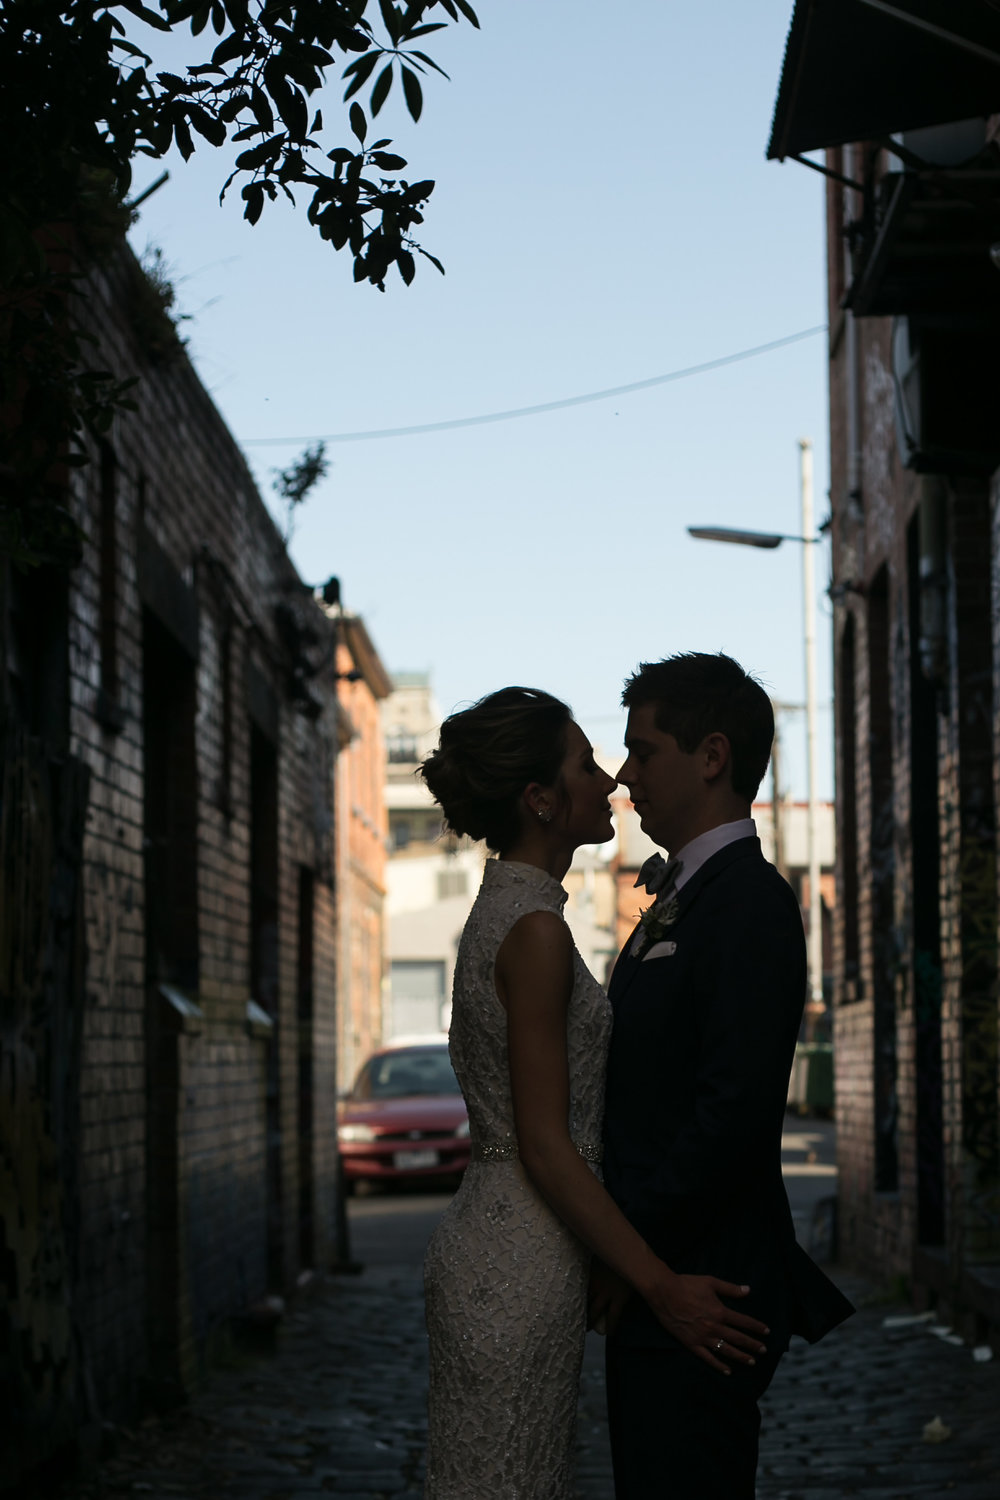 Brunswick and Fitzroy alleyways are great locations for Bridal portraits